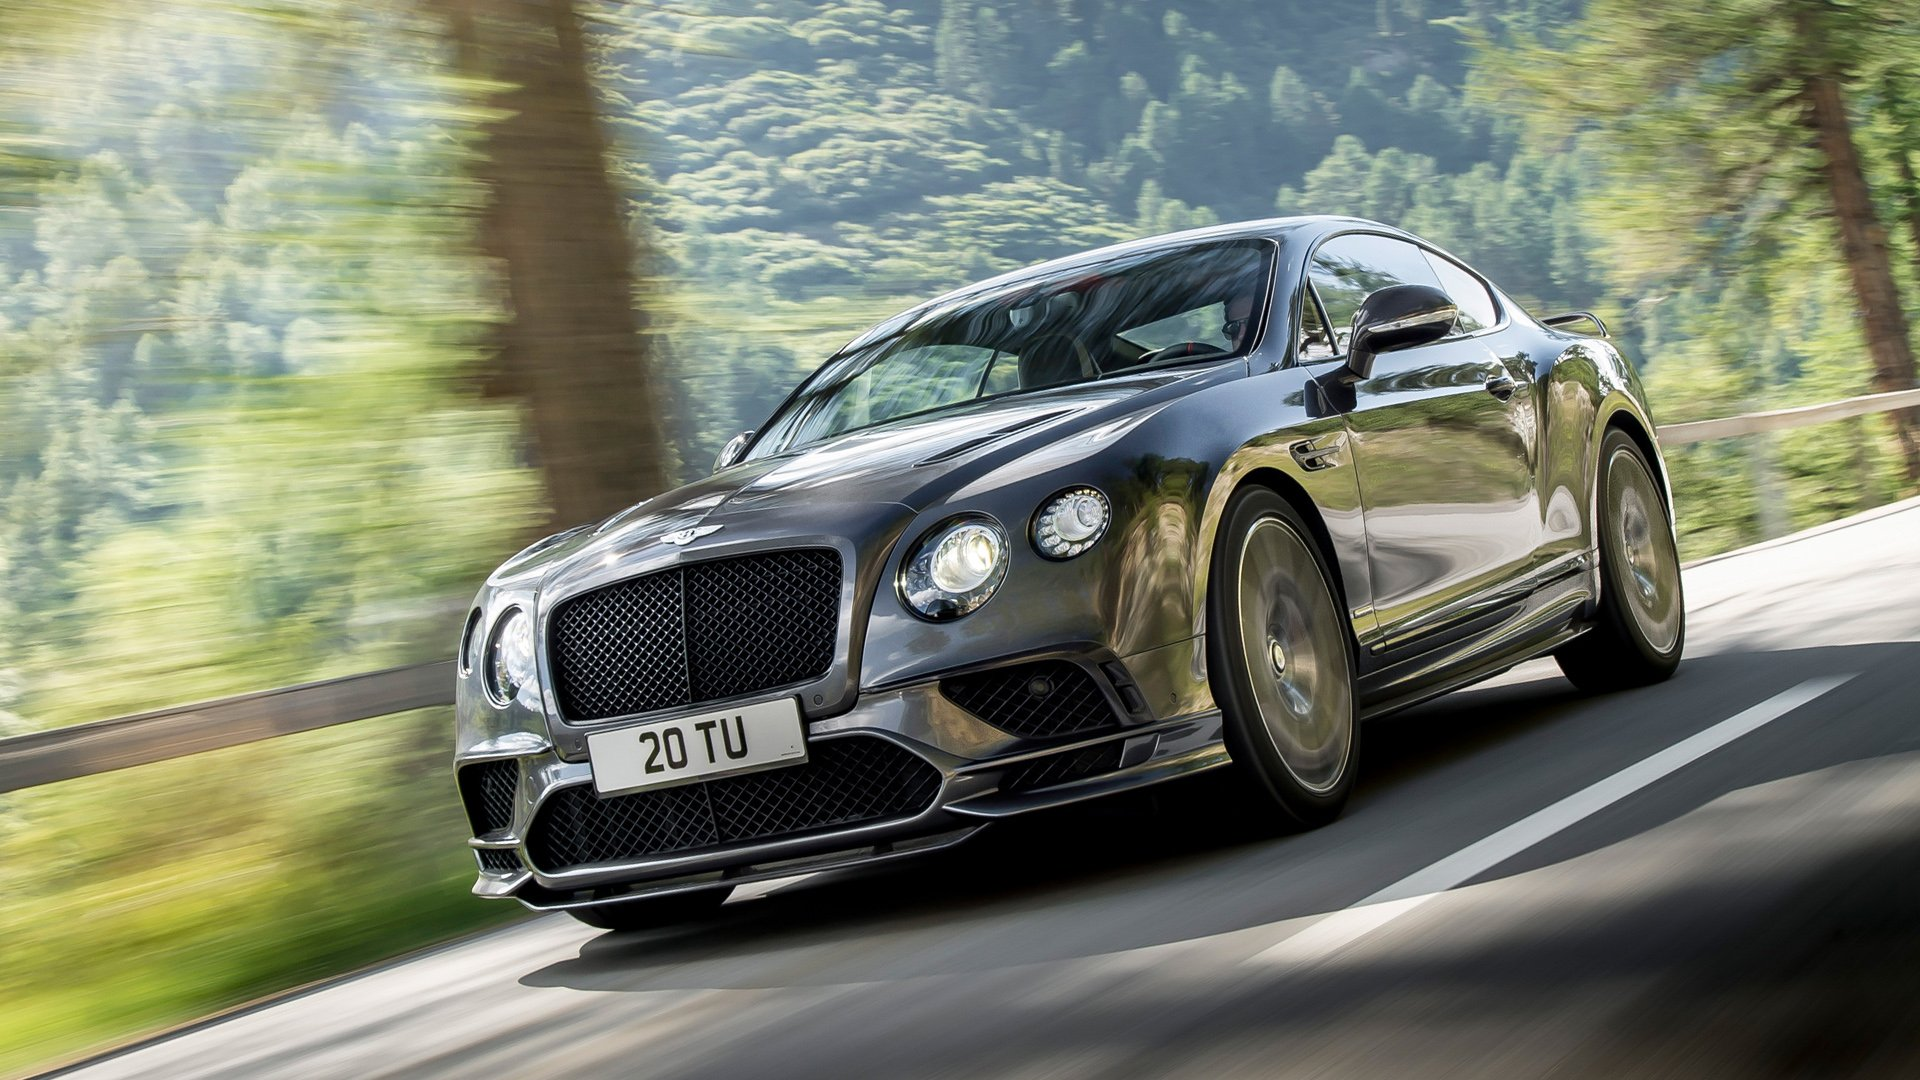 New 2019 Bentley Mulsanne Wallpaper HD Desktop